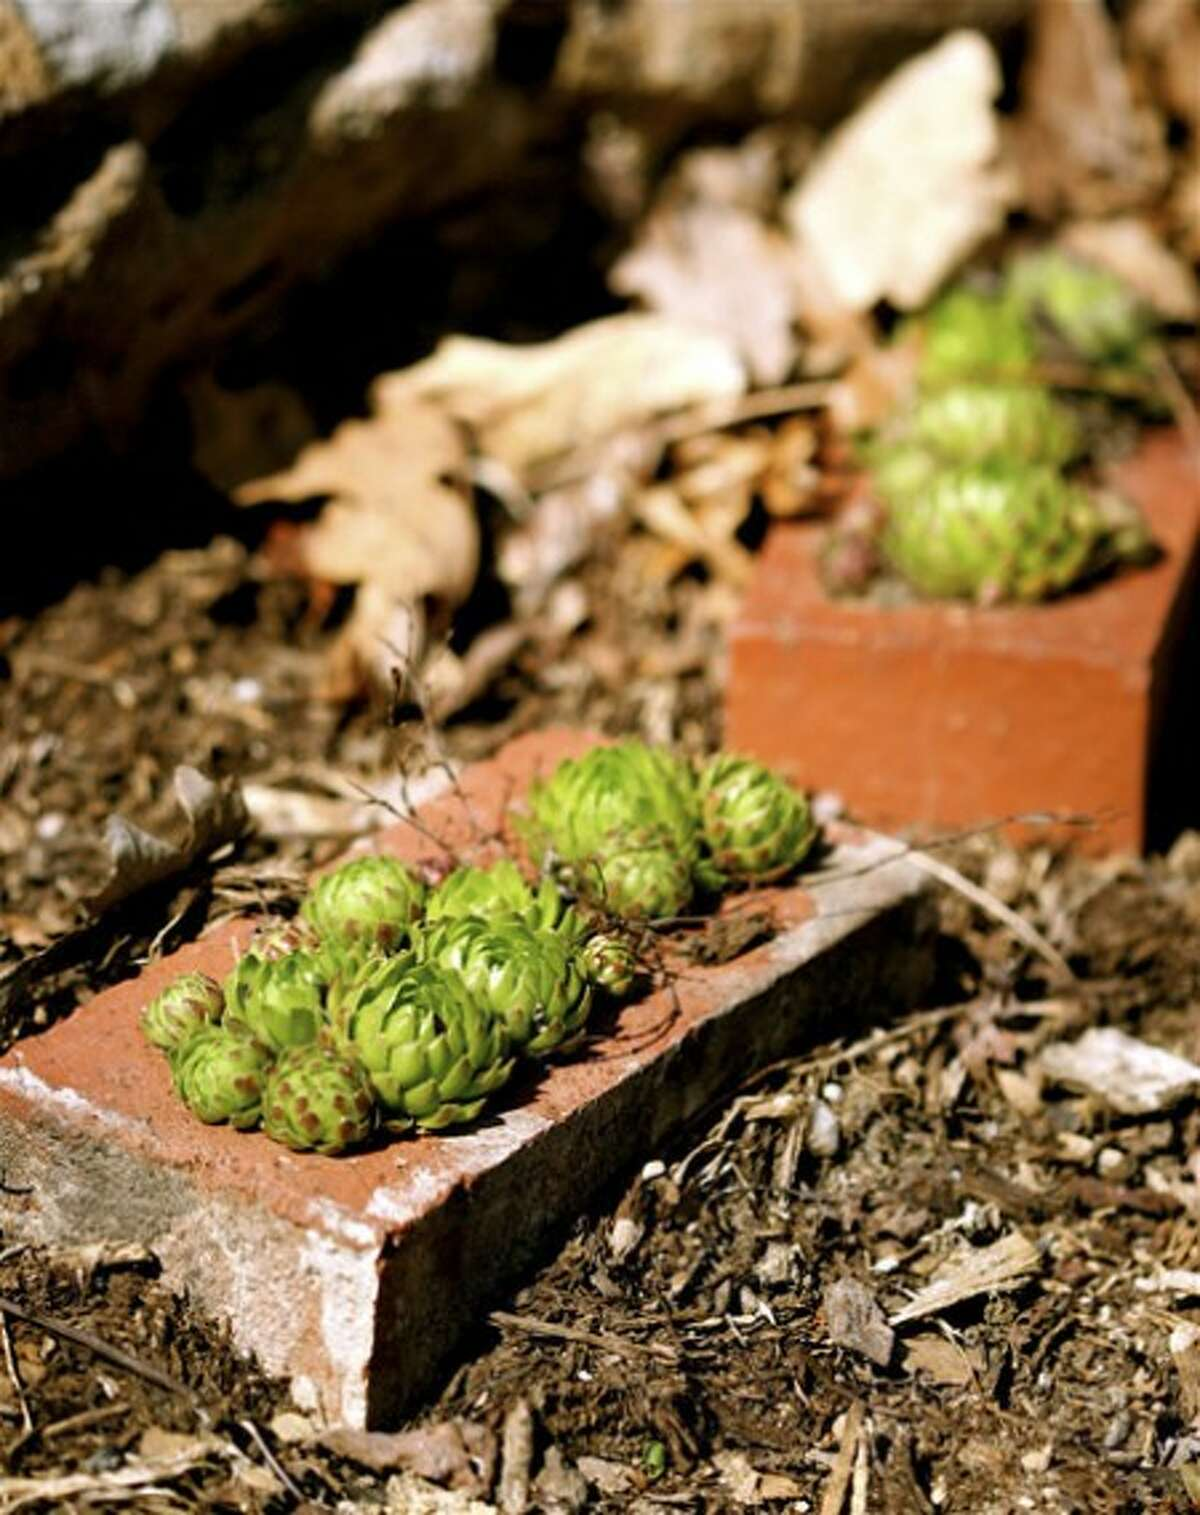 This April 13, 2007 photo shows succulents in New Market, Va., that have survived the rigors of a half-dozen moves by two generations of the same family. Their brick-container portability prevents the plant separation anxiety that often results when a gardener sells a home and is forced to leave cherished plants behind. (AP Photo/Dean Fosdick)